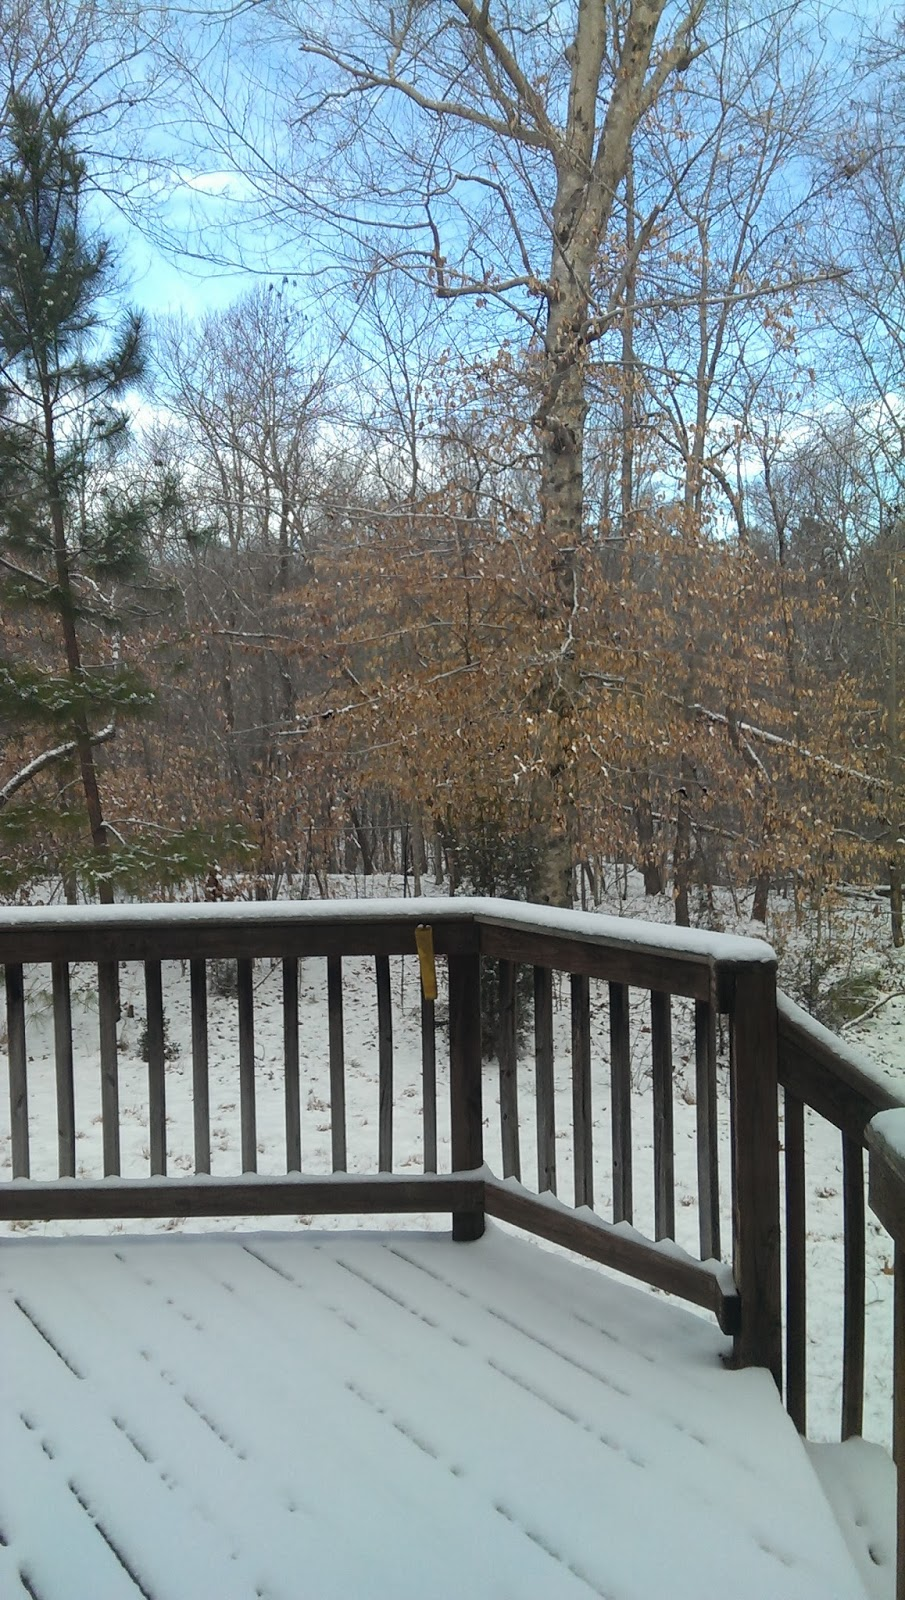 snow on the deck and back yard